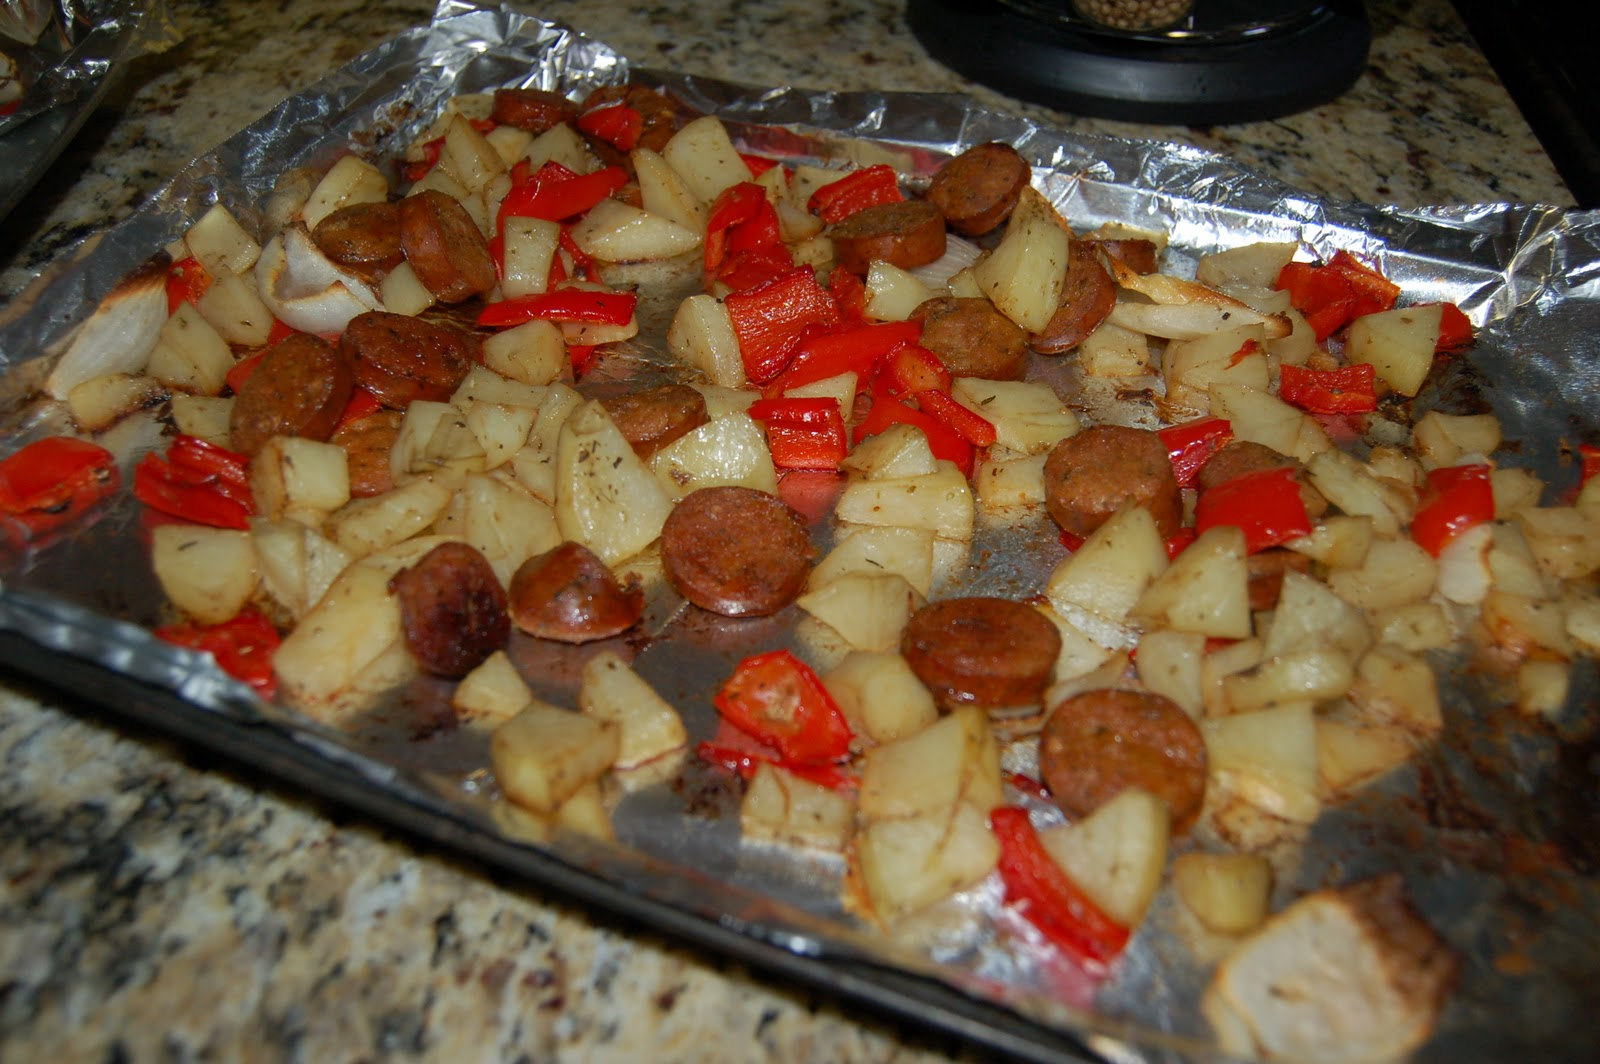 David + Jen = Max: Roasted Potatoes, Chicken Sausage and Peppers